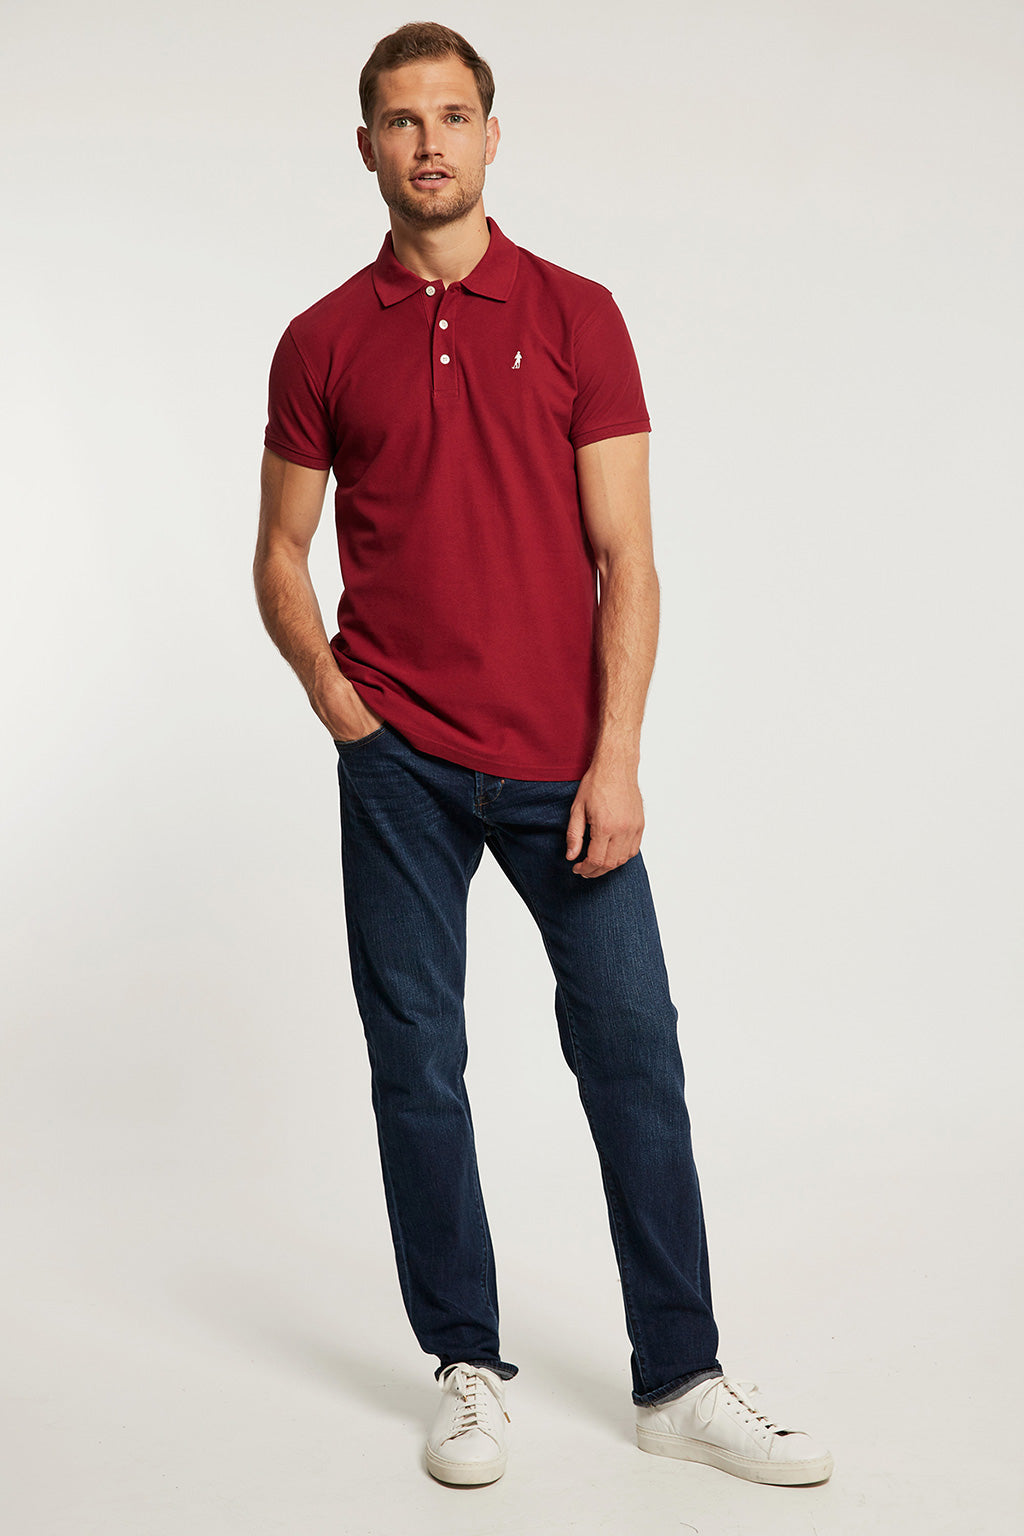 Maroon polo shirt with embroidery